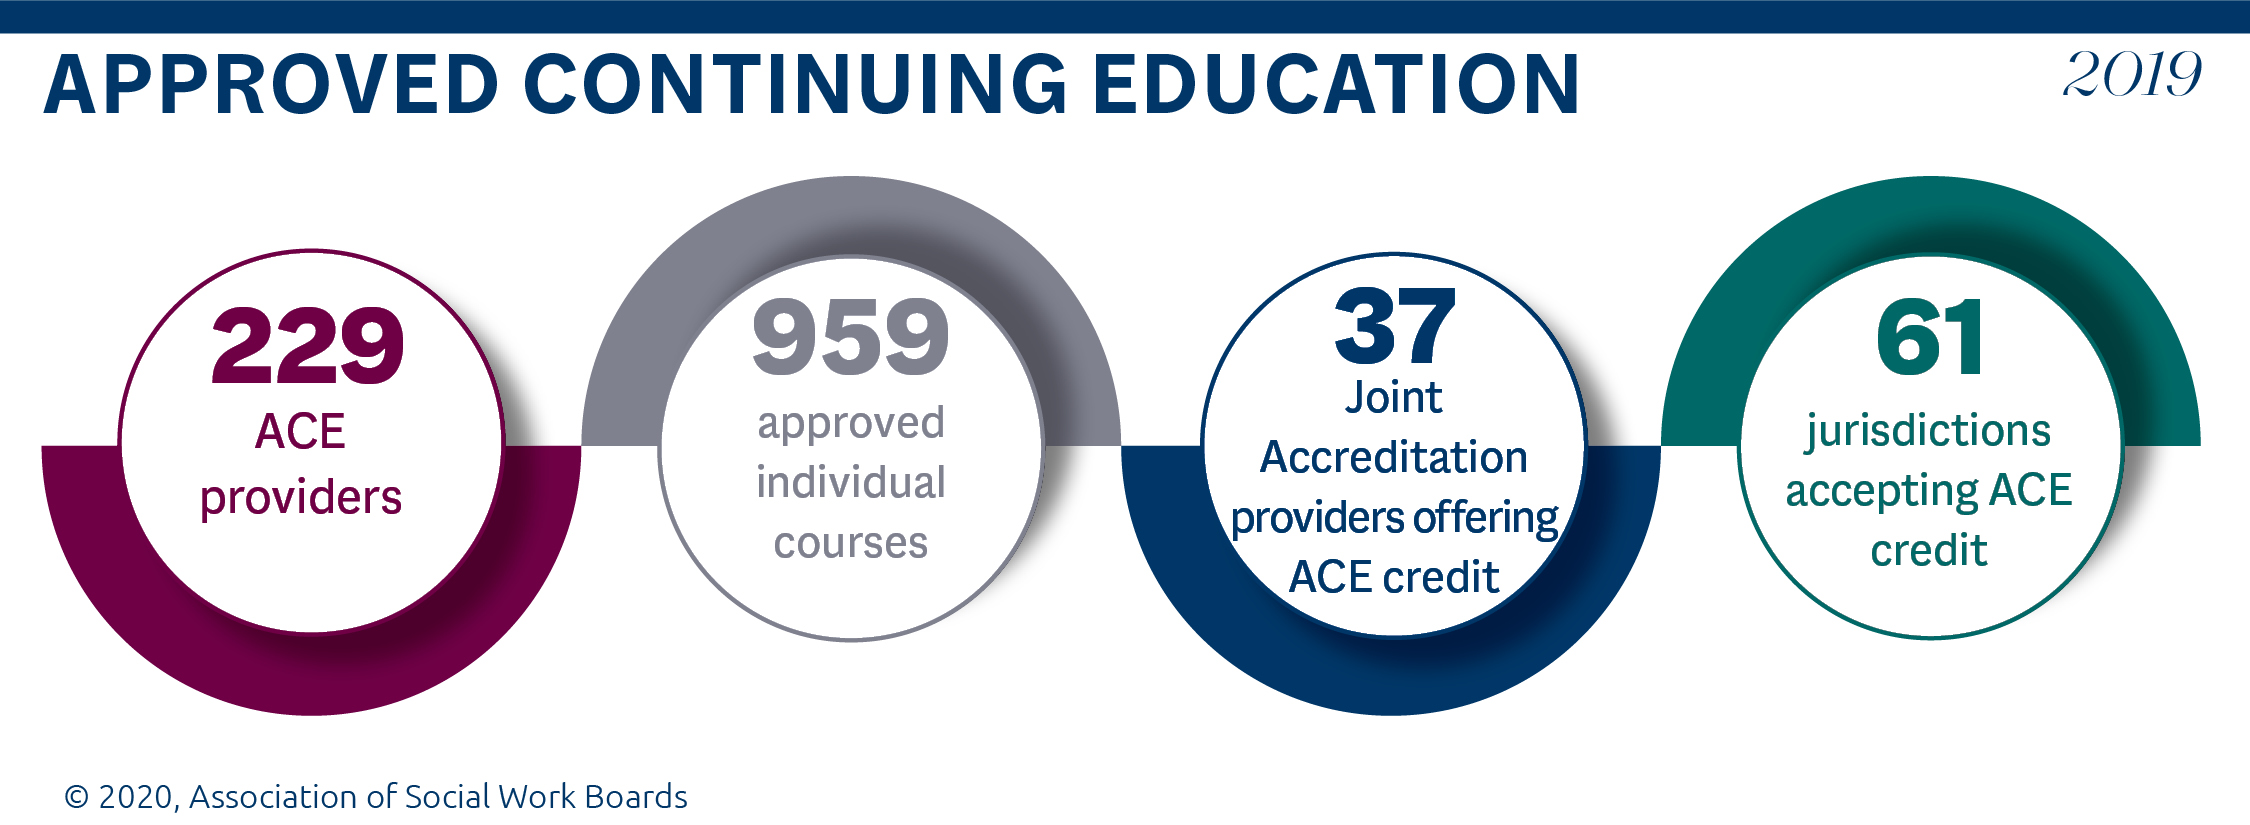 Graphic showing that in 2019 there were 229 Approved Continuing Education providers; 959 approved individual courses; 37 joint accreditation providers offering ACE credit; and 61 jurisdictions accpeting ACE credit